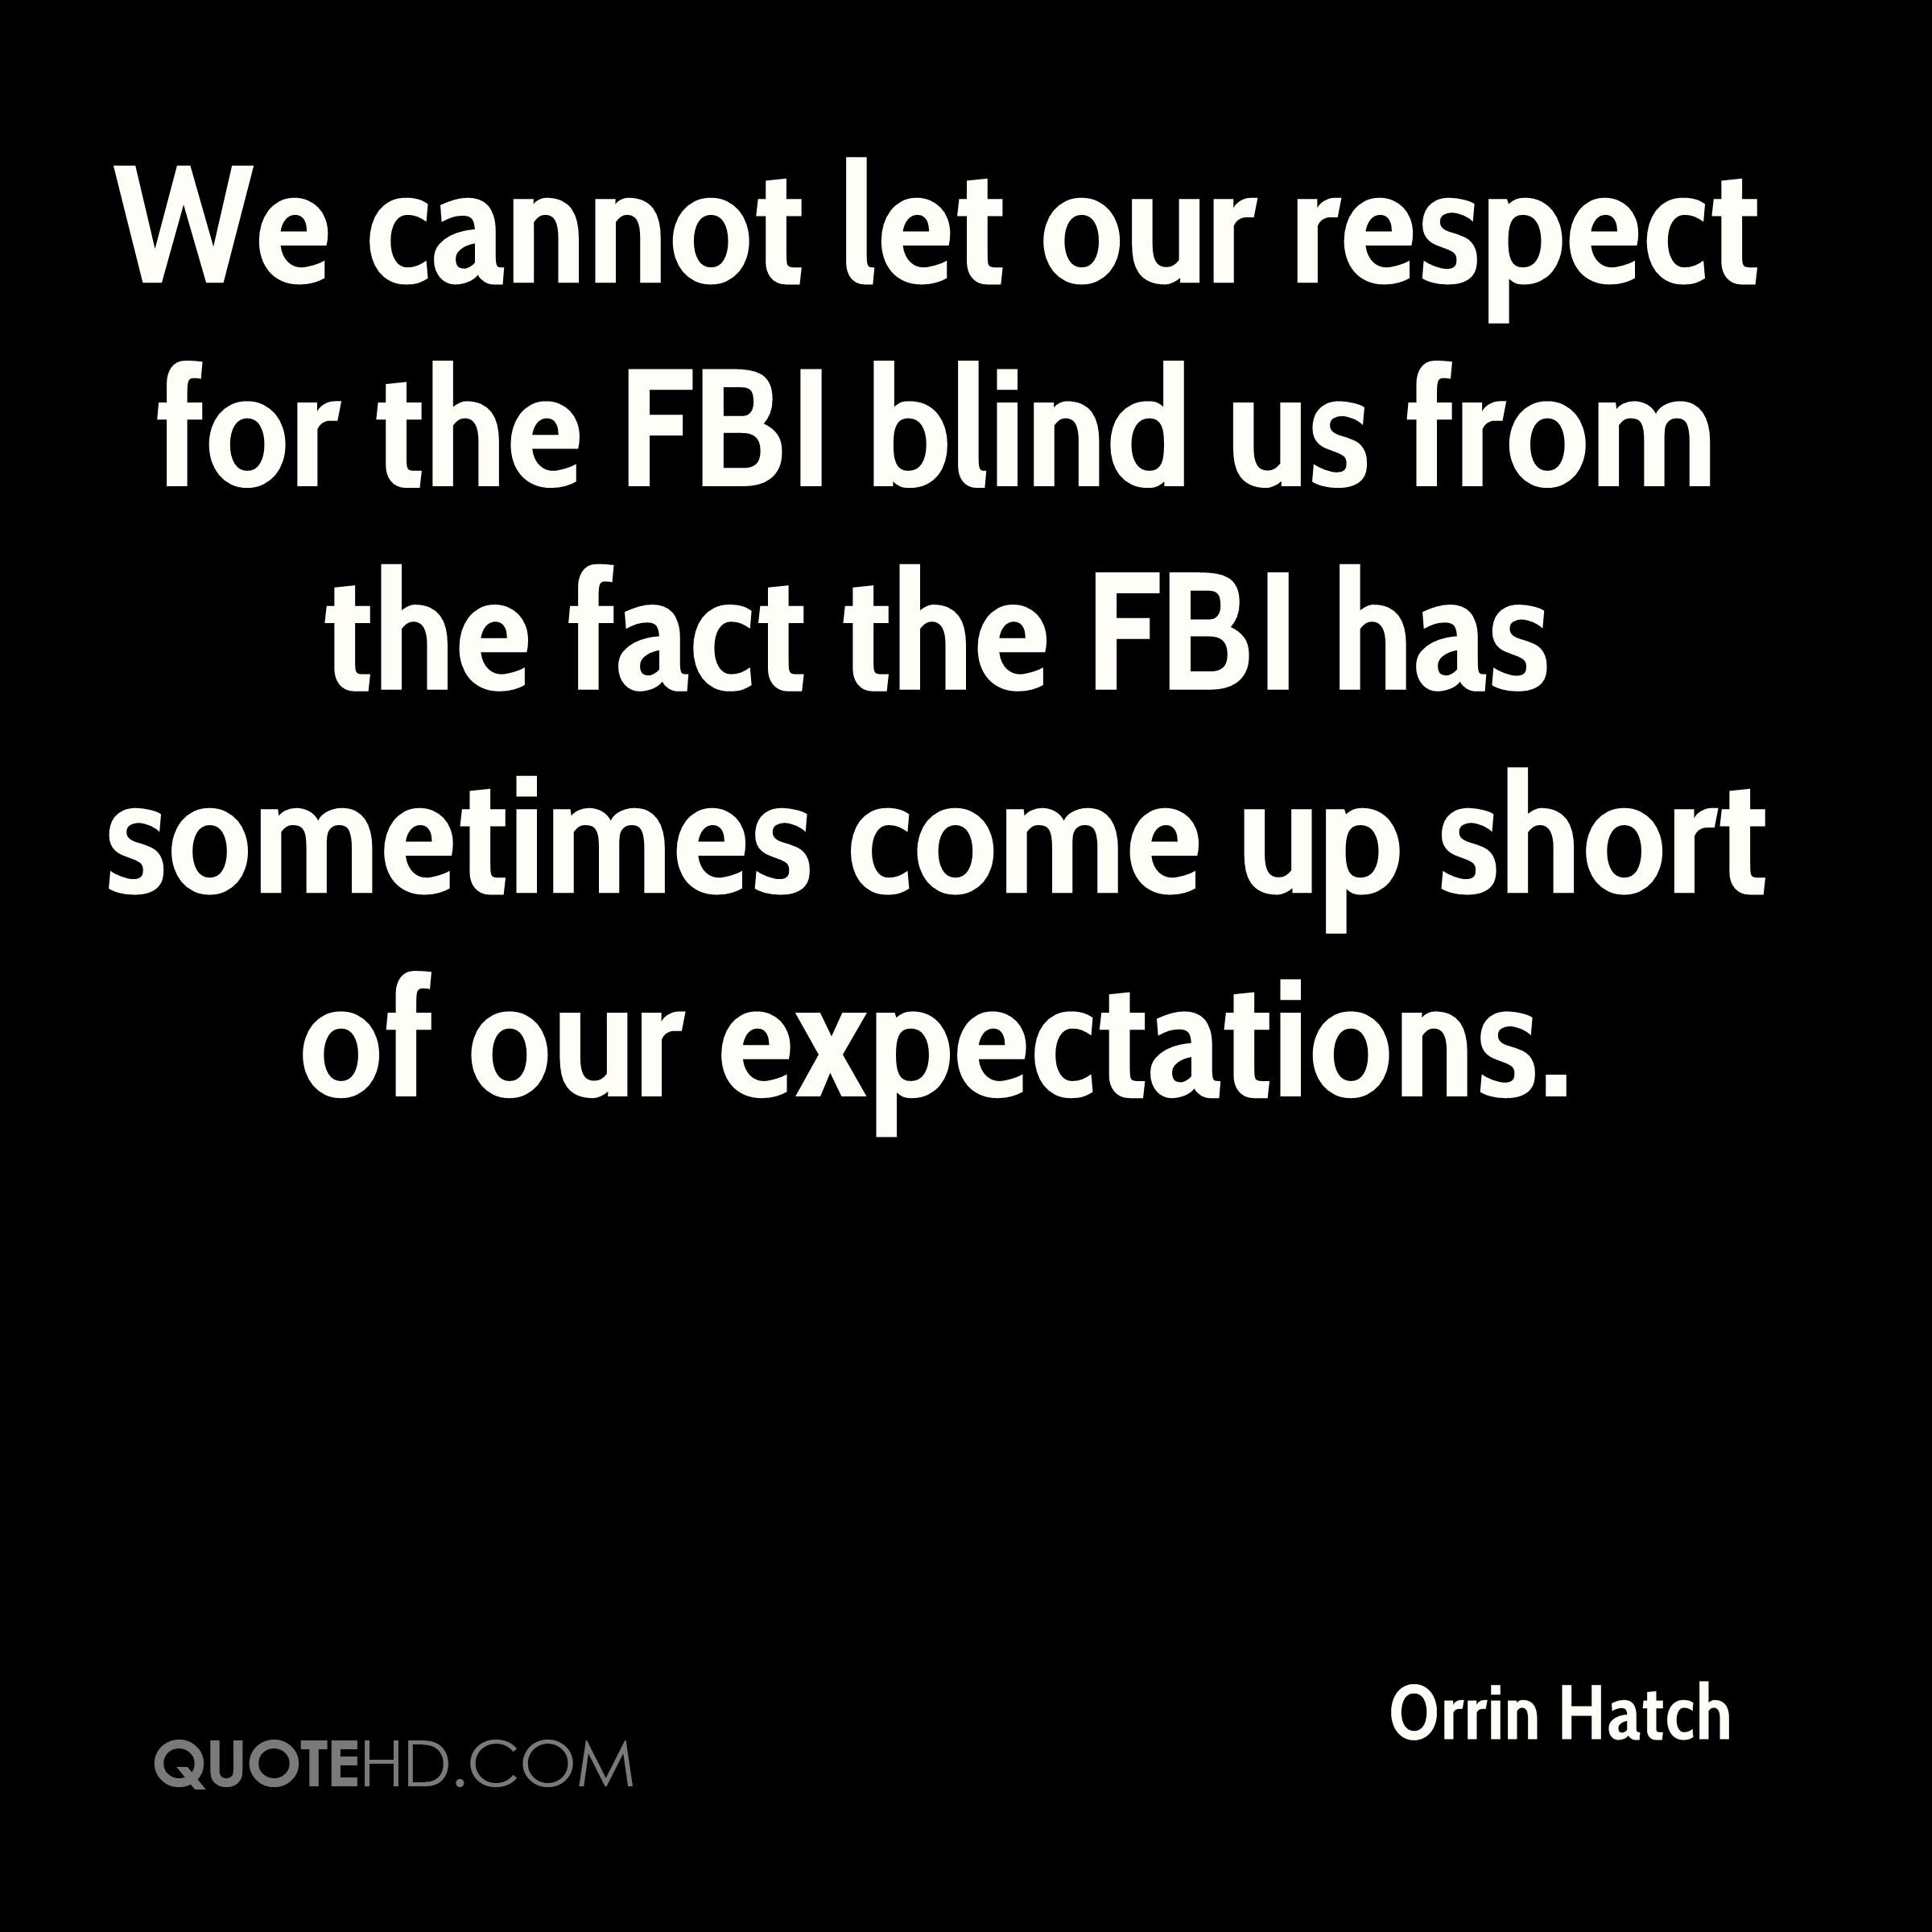 We cannot let our respect for the FBI blind us from the fact the FBI has sometimes come up short of our expectations.